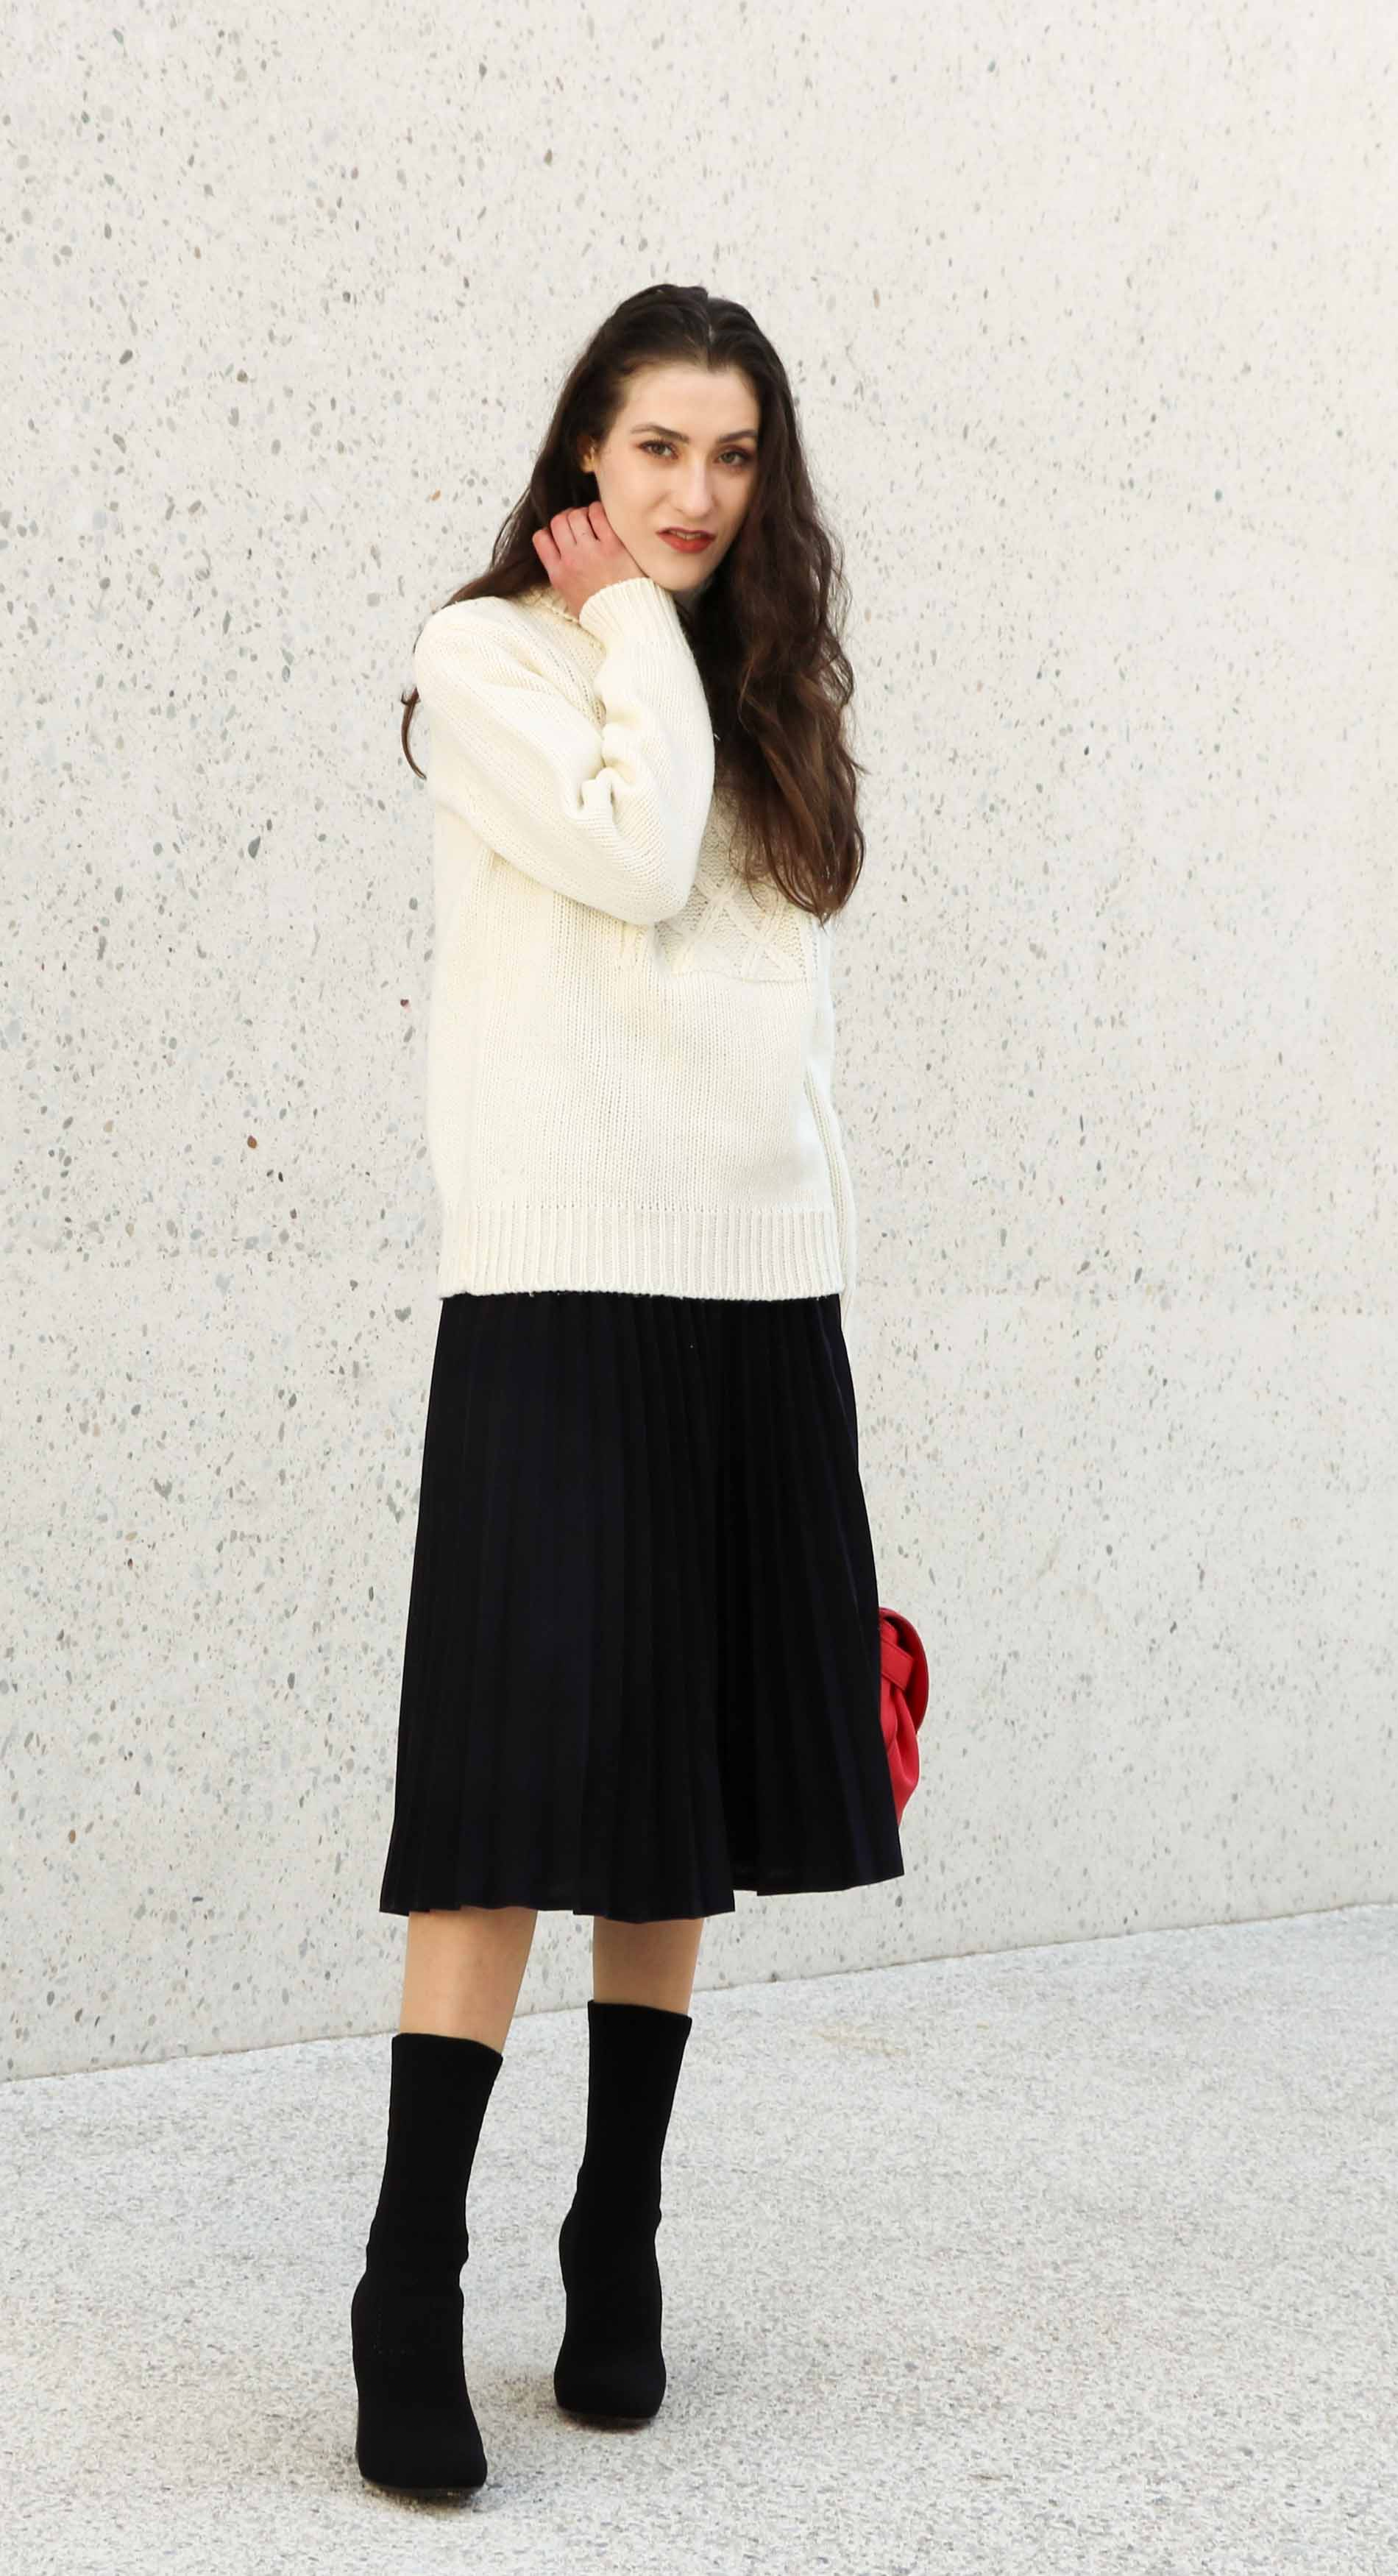 Fashion Blogger Veronika Lipar of Brunette from Wall Street wearing white oversized cable knit sweater, black pleated midi skirt, pink top handle bag from See by Chloe and black sock boots from Elena Iachi